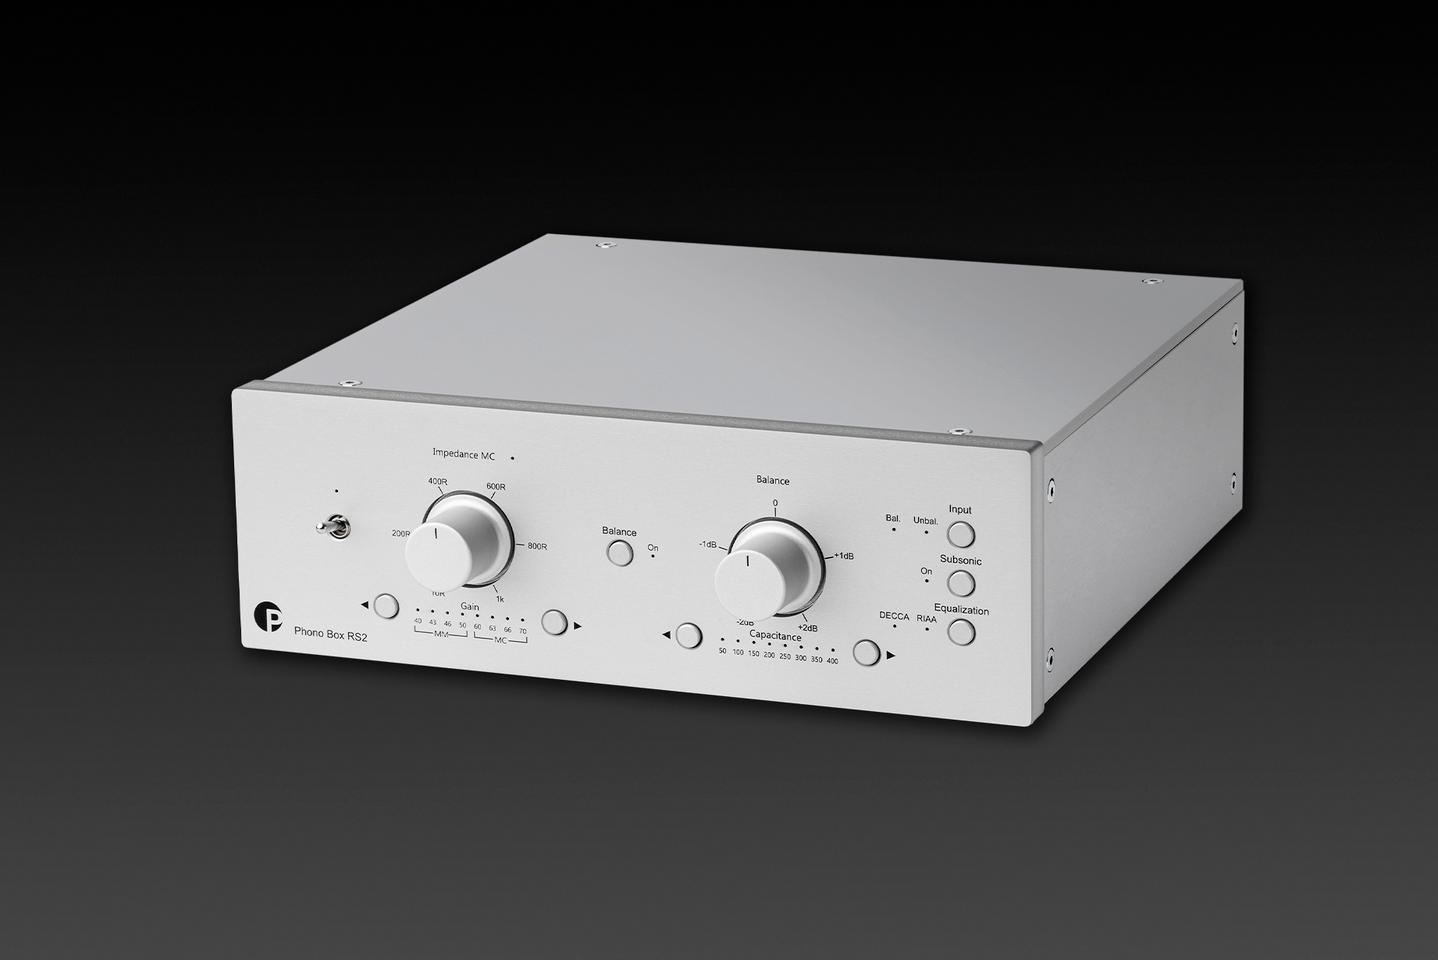 The feature set includes a fully balanced design, wide gain control, switchable equalization and variable input impedance loading